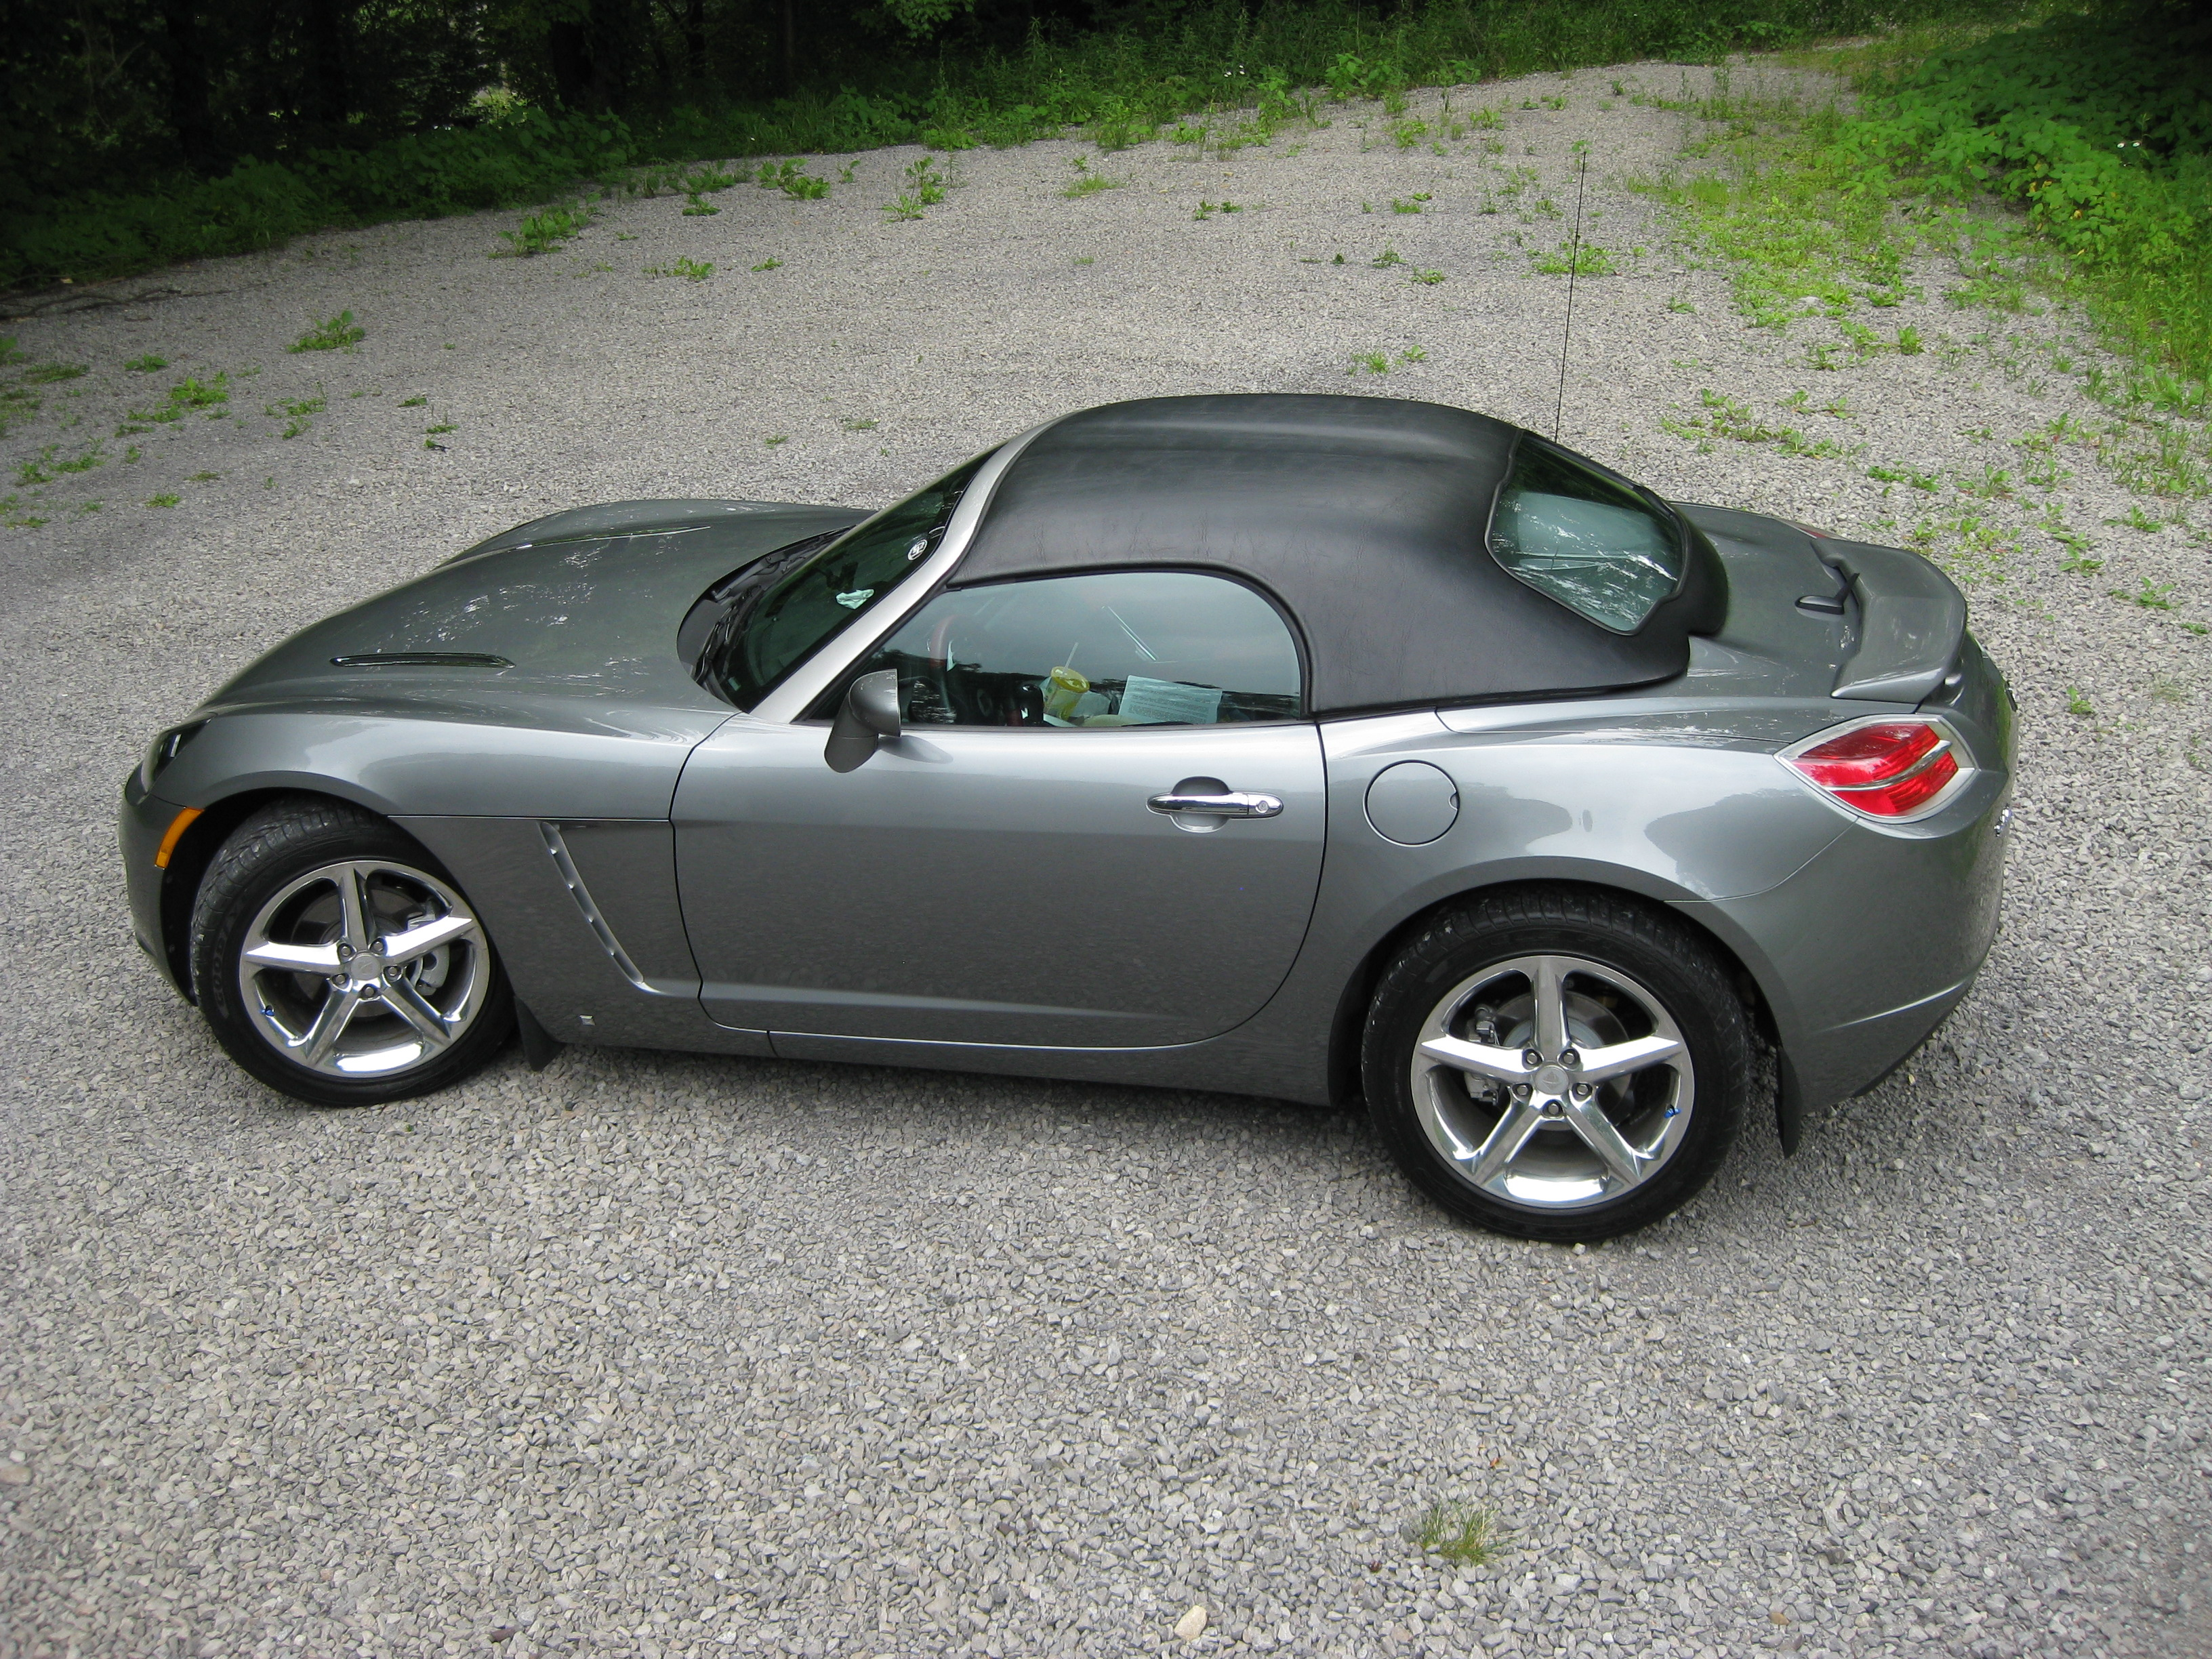 pontiac solstice convertible top replacement